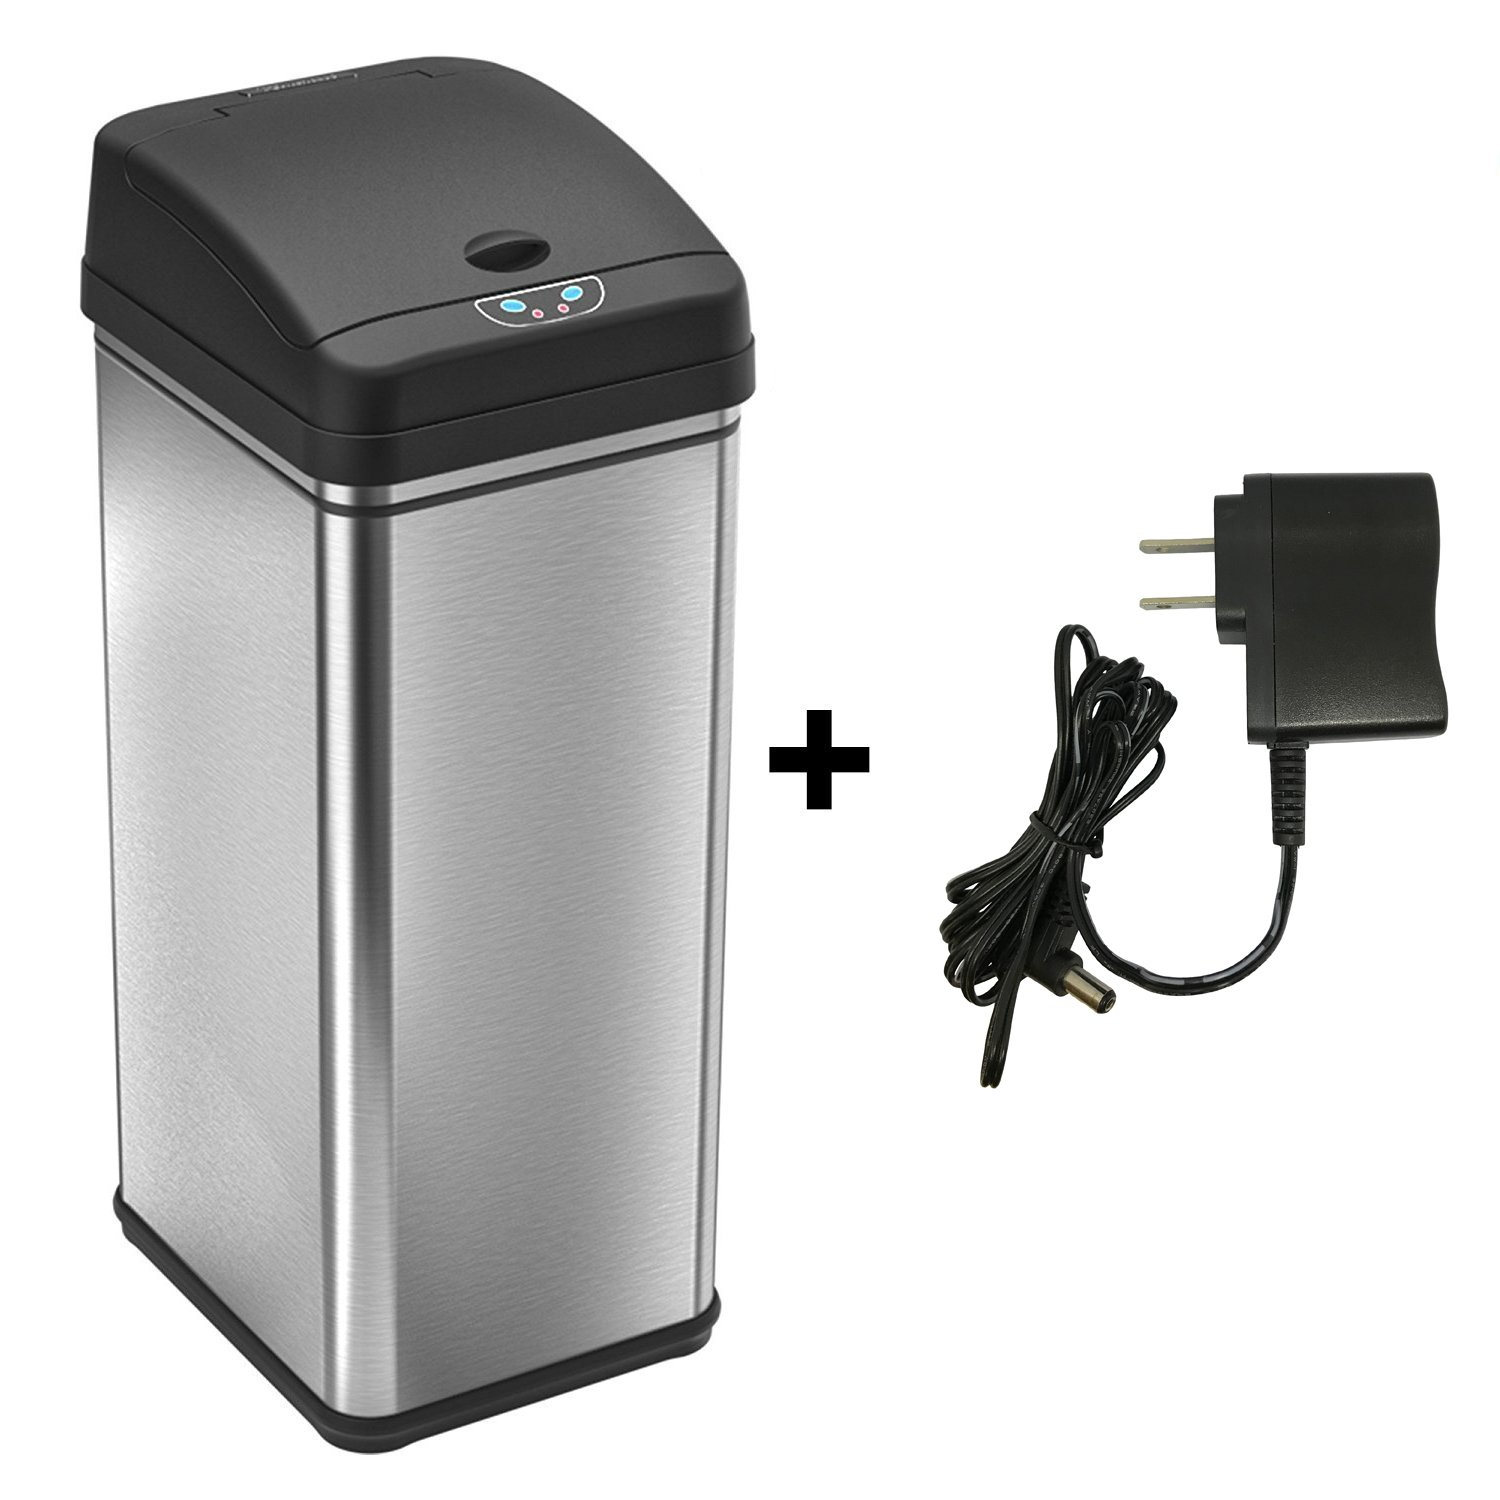 iTouchless 13 Gallon Automatic Touchless Sensor Kitchen Trash Can with AC Adapter, Odor Filter Deodorizer, Platinum Limited Edition (With Ac)